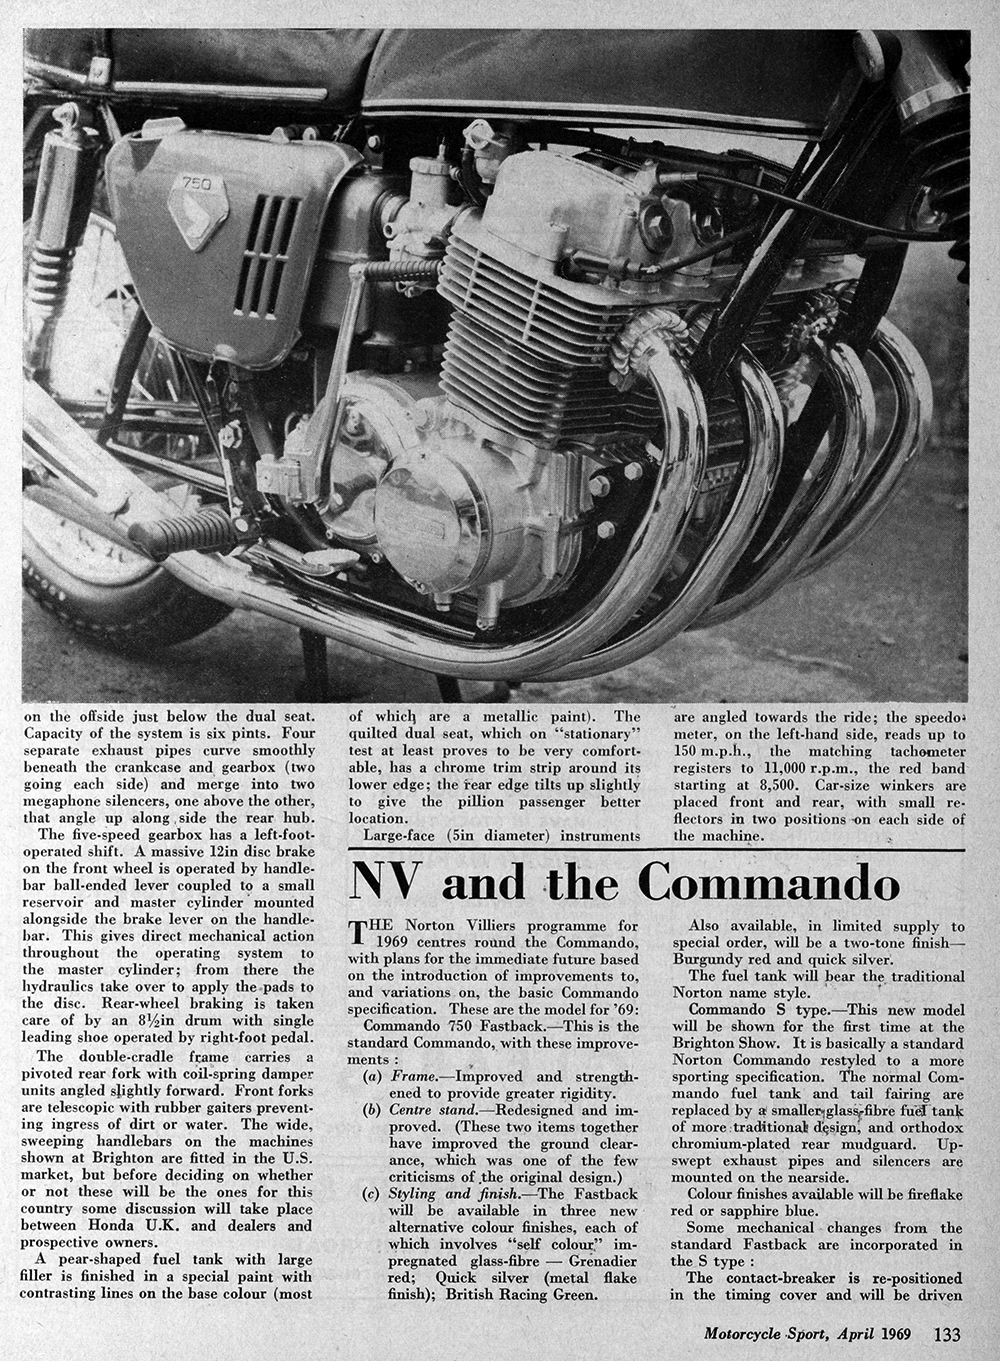 1969 Honda CB750-4 road test 2.jpg